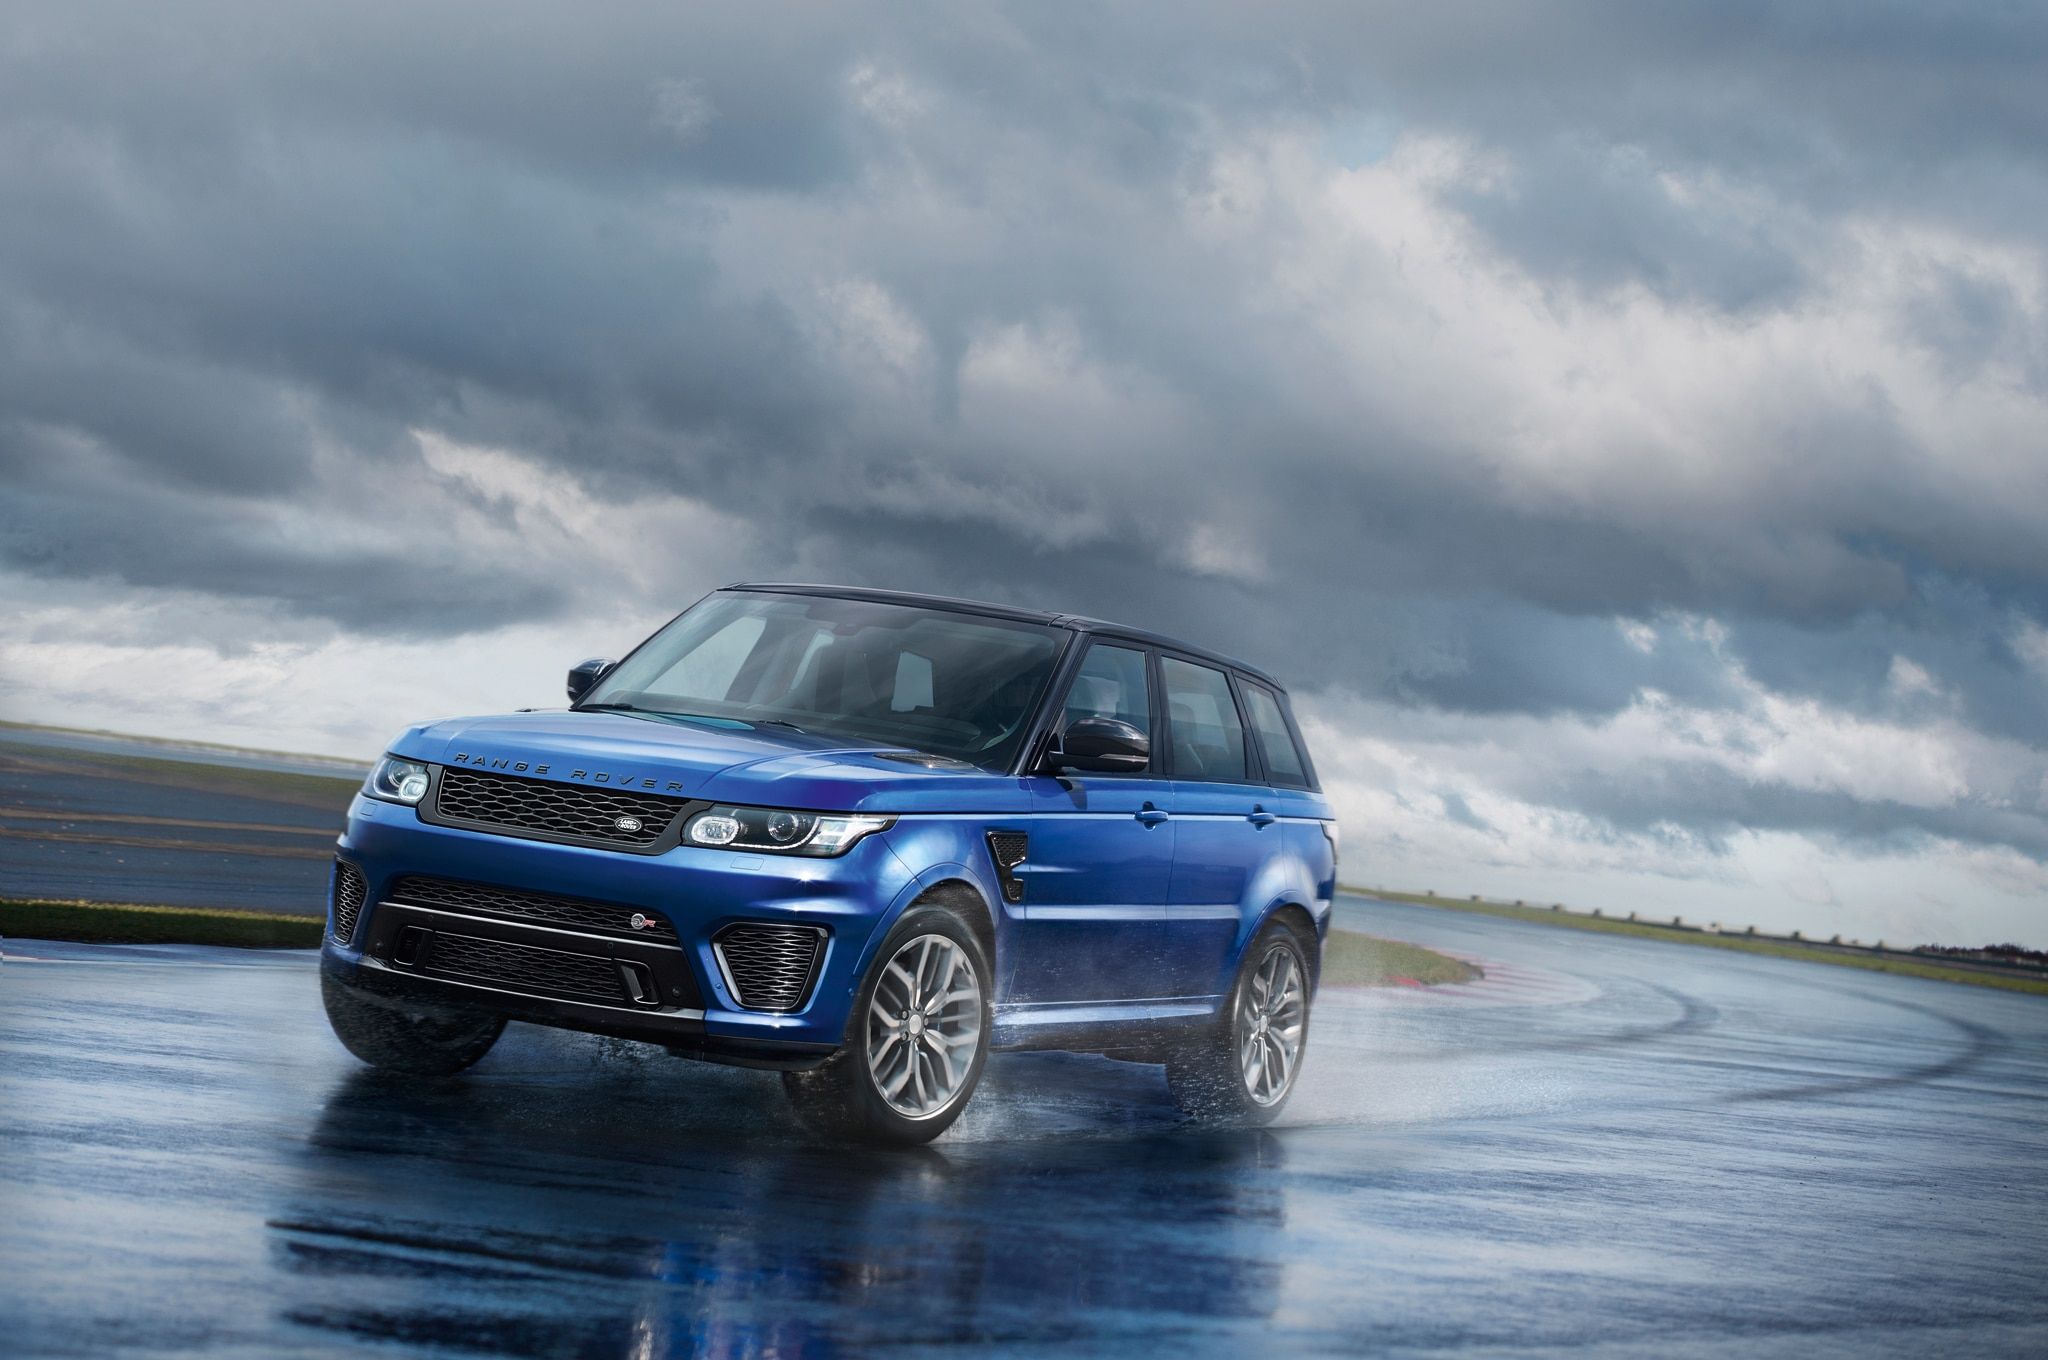 Range Rover Sport SVR Runs Acceleration Tests on Dirt Snow and